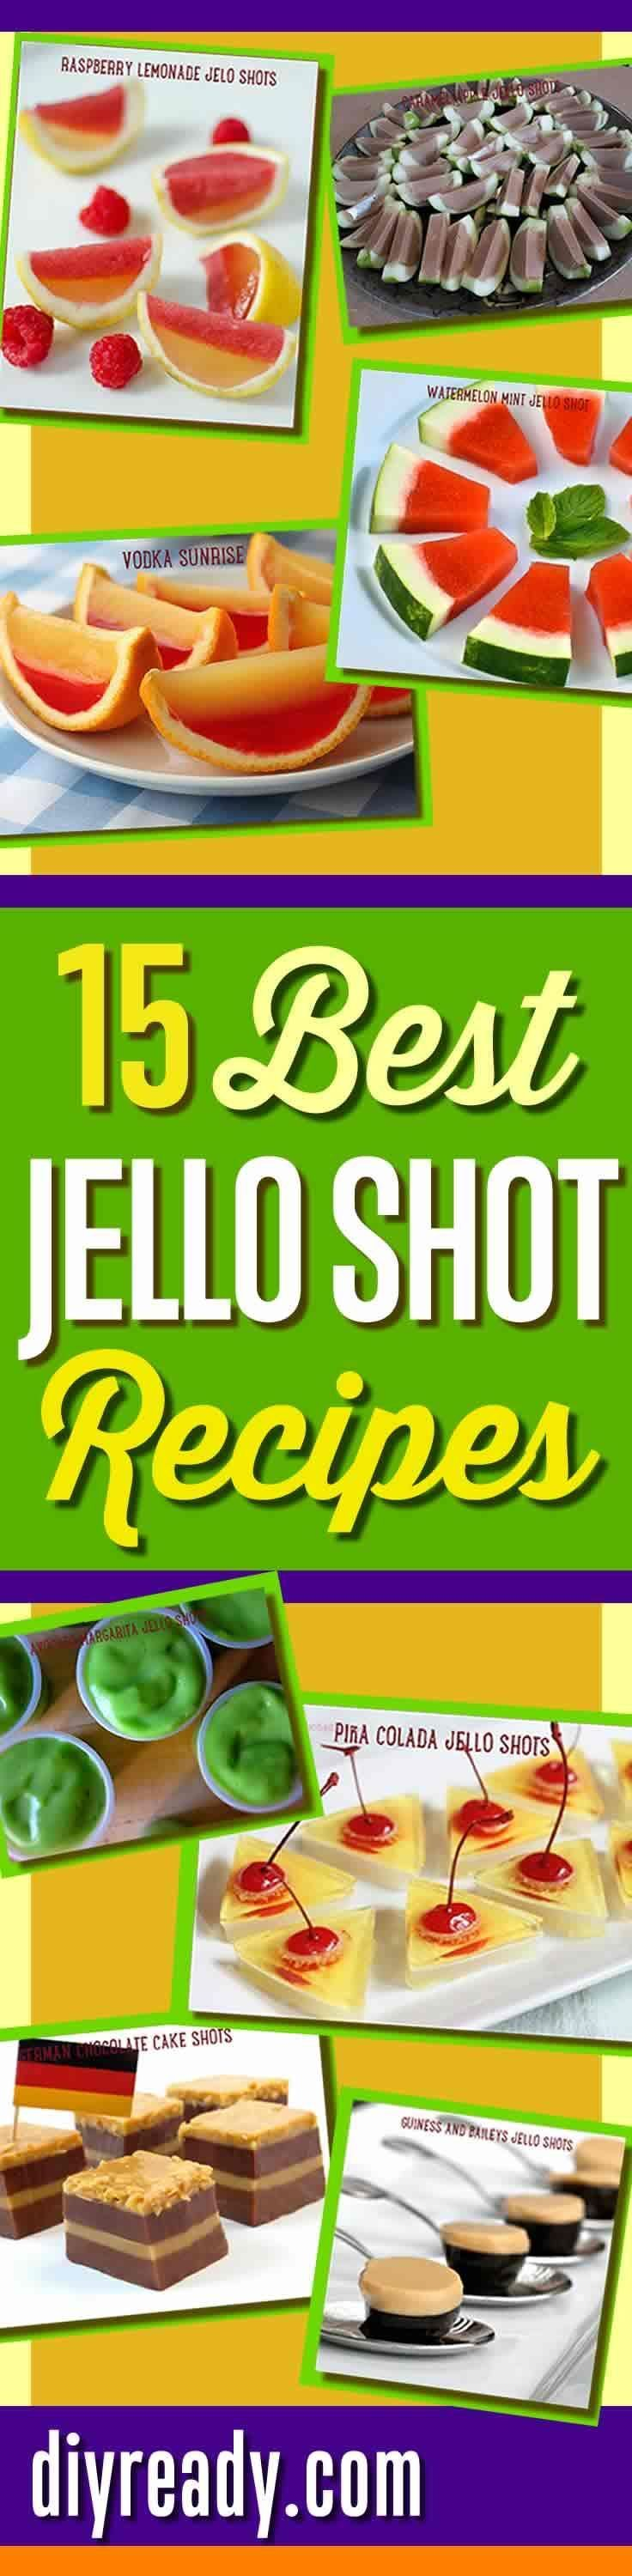 17 best ideas about Chocolate Cake Shot on Pinterest | Raw ...